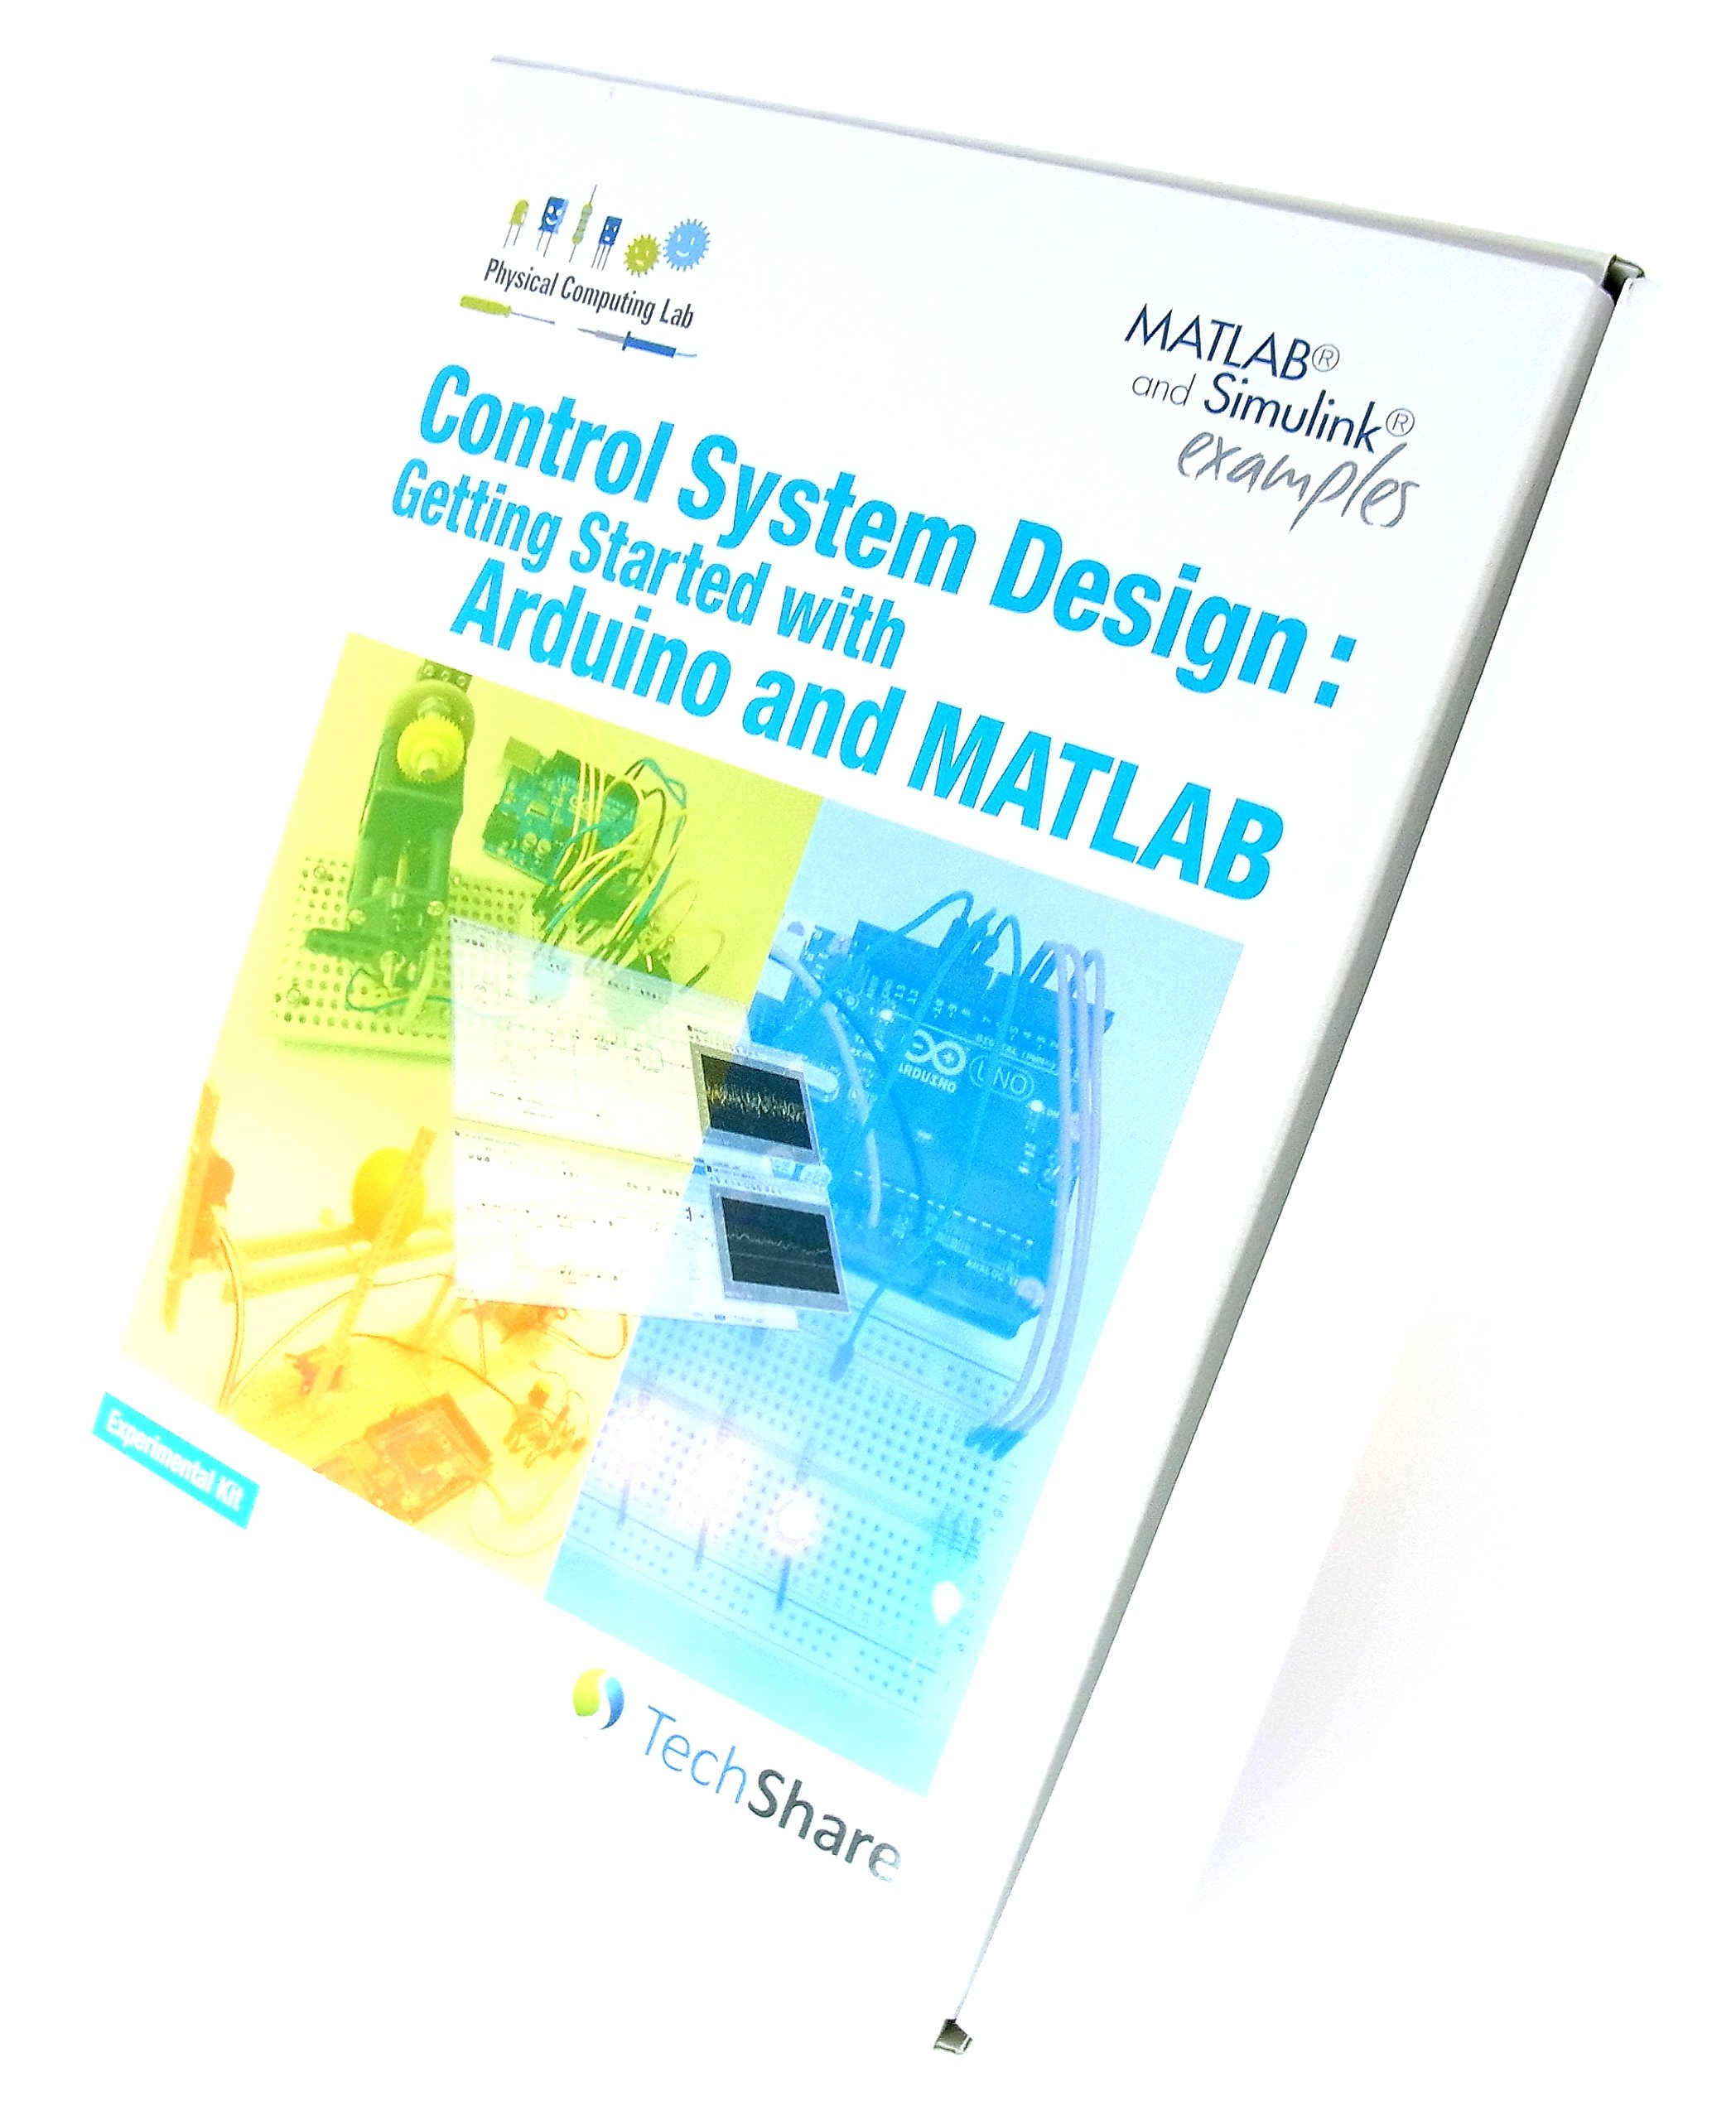 Control System Design: Getting Started with Arduino and MATLAB  -Experimental Kit